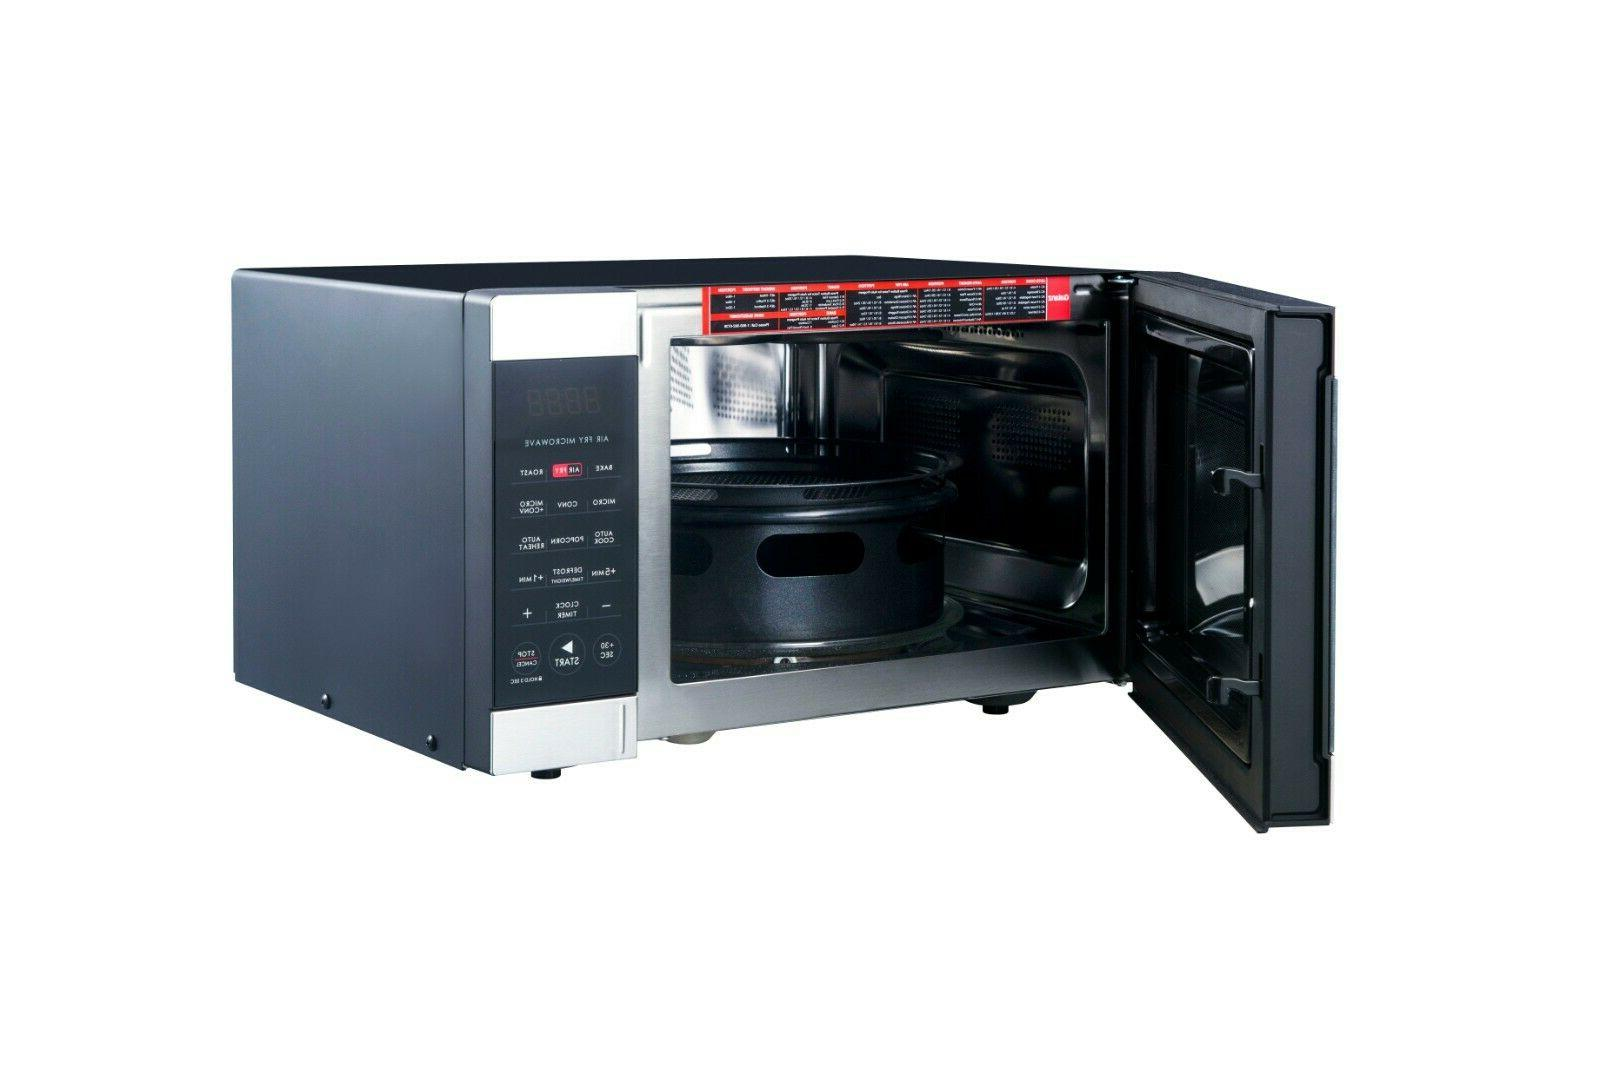 air fry microwave convection oven 900watts multi